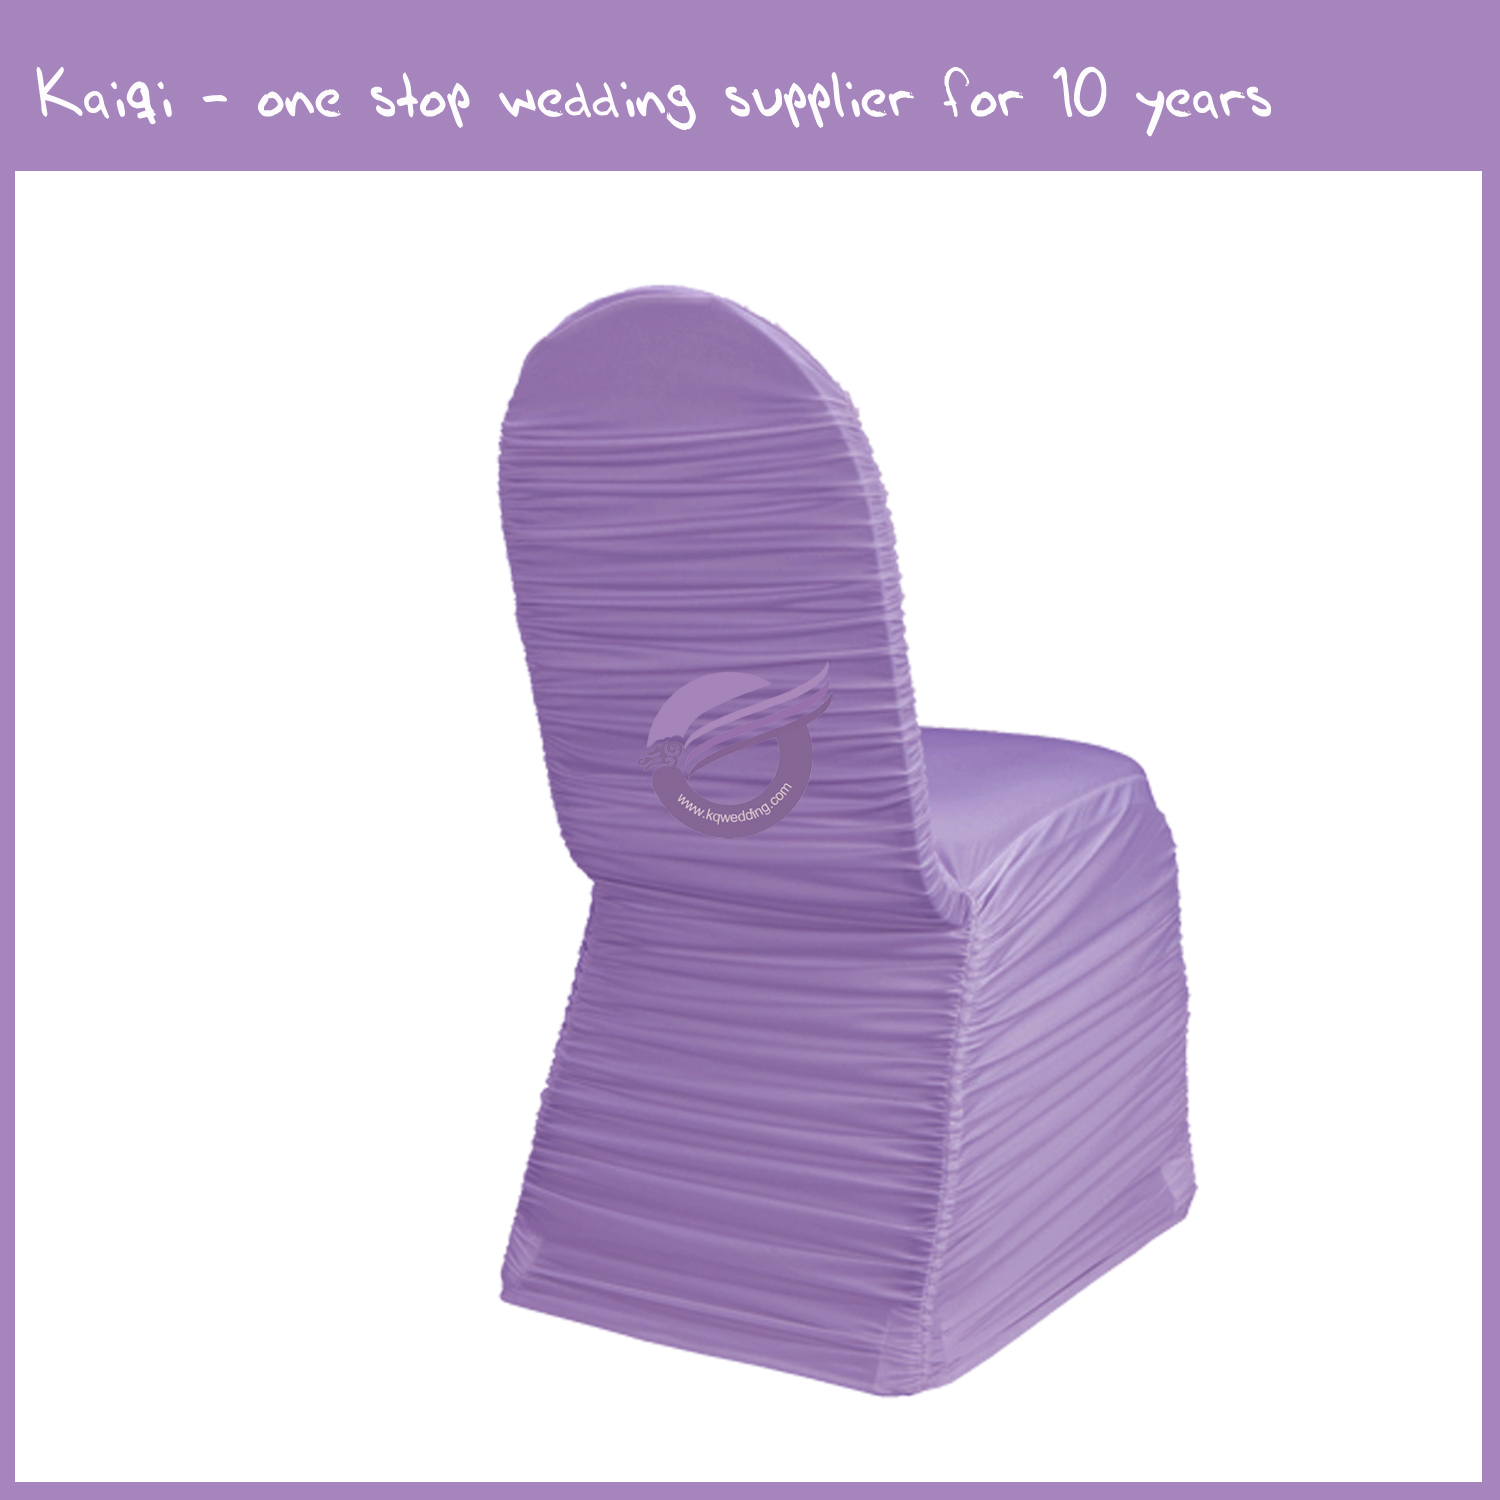 lavender roughed spandex chair coverkaiqi wedding